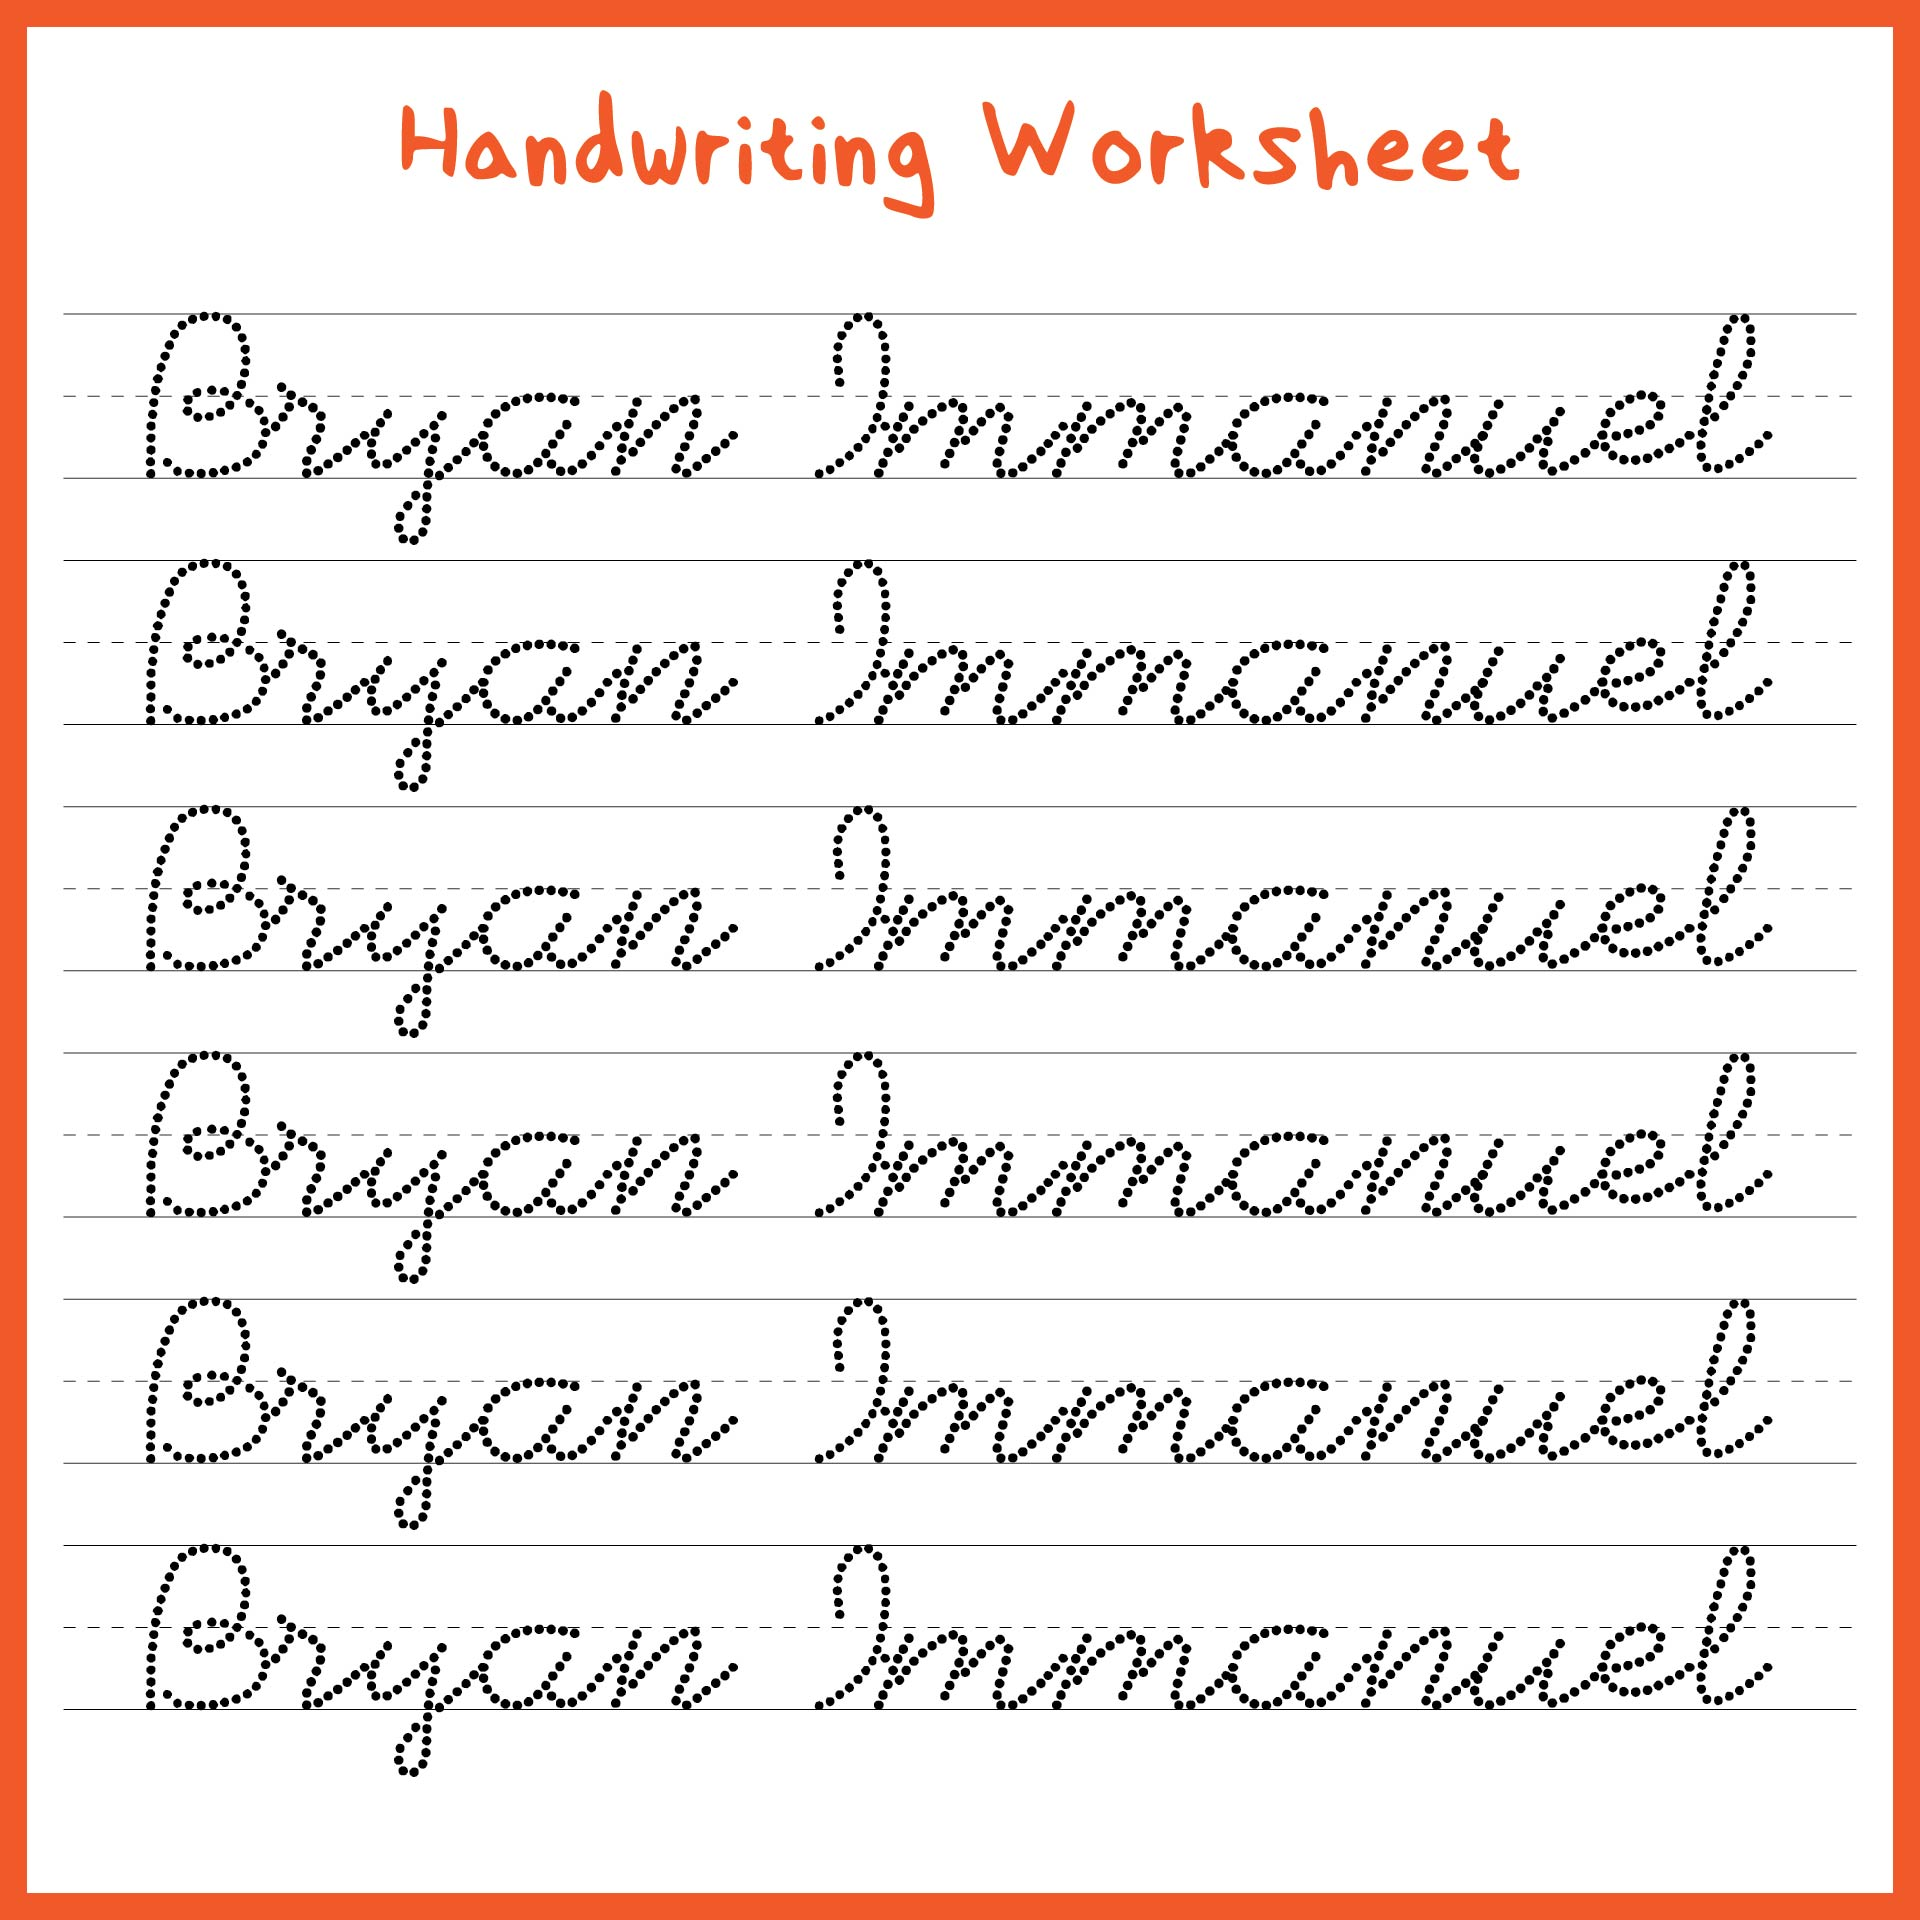 Printables Kindergarten Handwriting Worksheets Free Printable handwriting worksheets kindergarten 1000 images about 7 best of printable worksheets